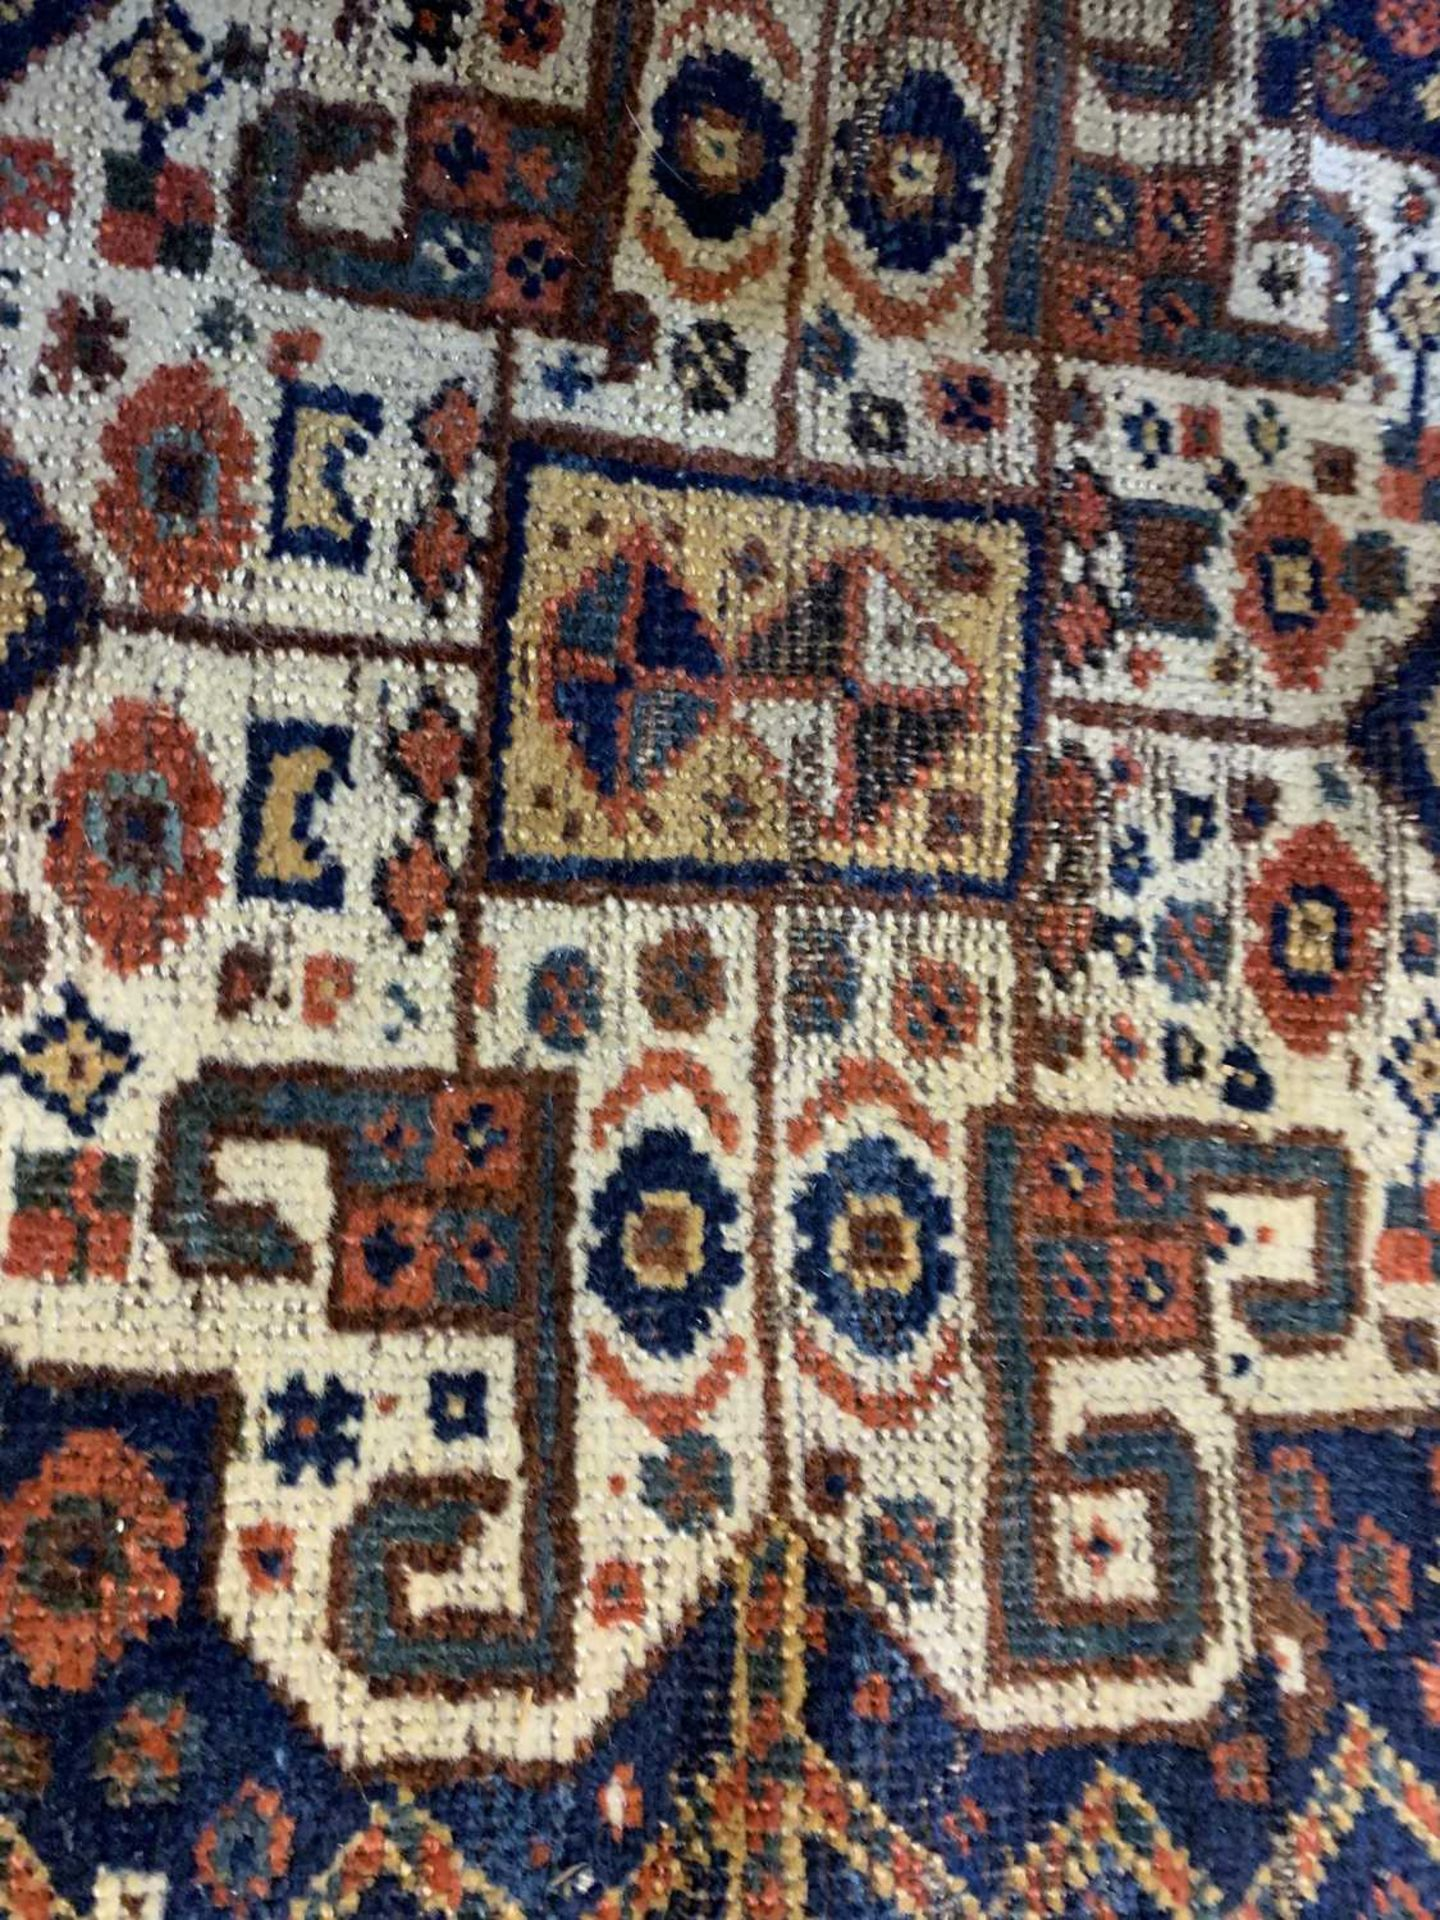 A Persian carpet, - Image 3 of 14